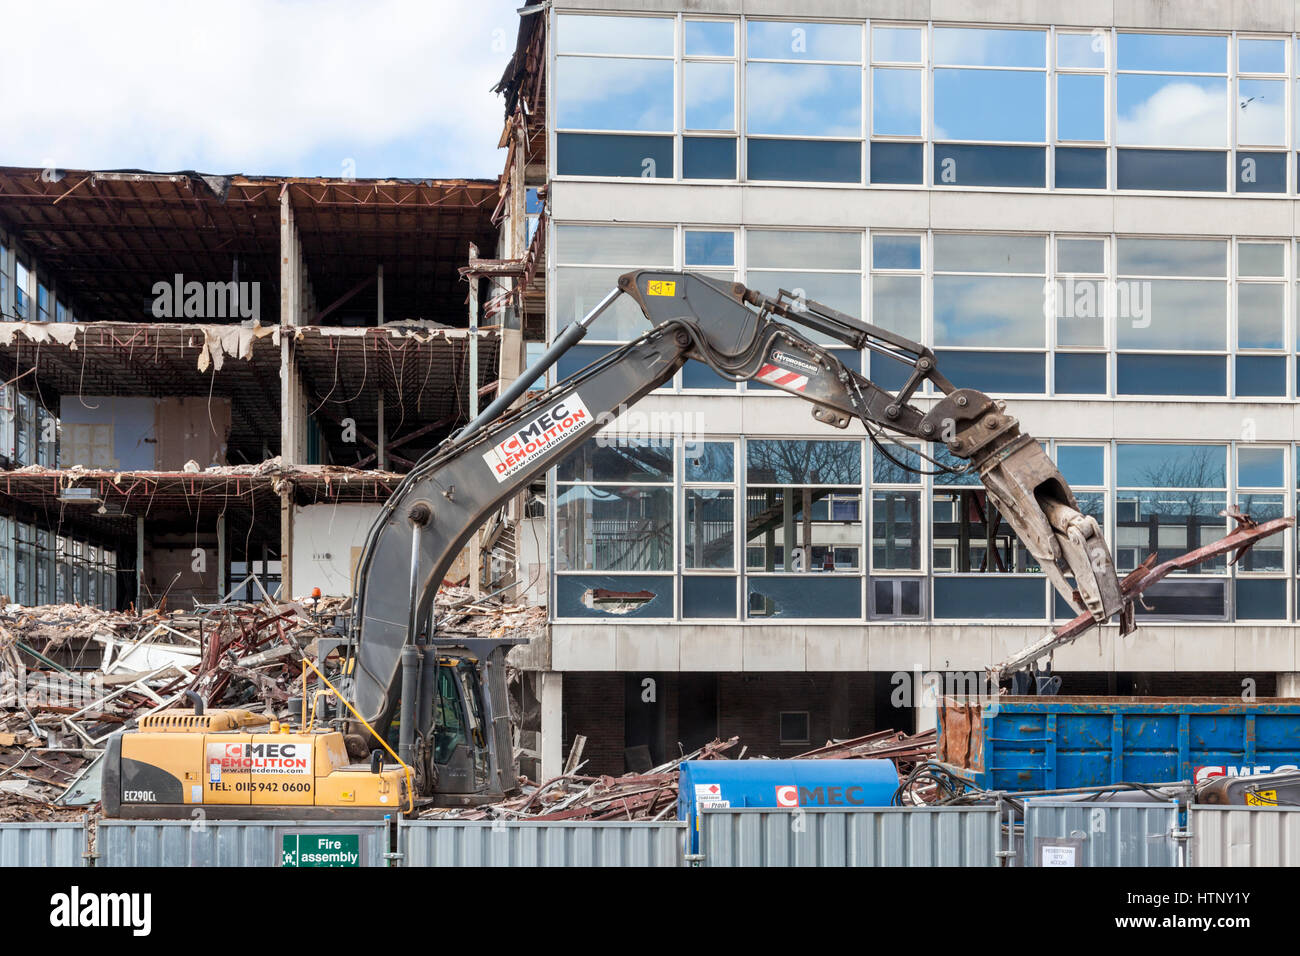 West Bridgford, Nottinghamshire, UK. 13th March 2017. Demolition of Nottinghamshire County Council's CLASP office - Stock Image